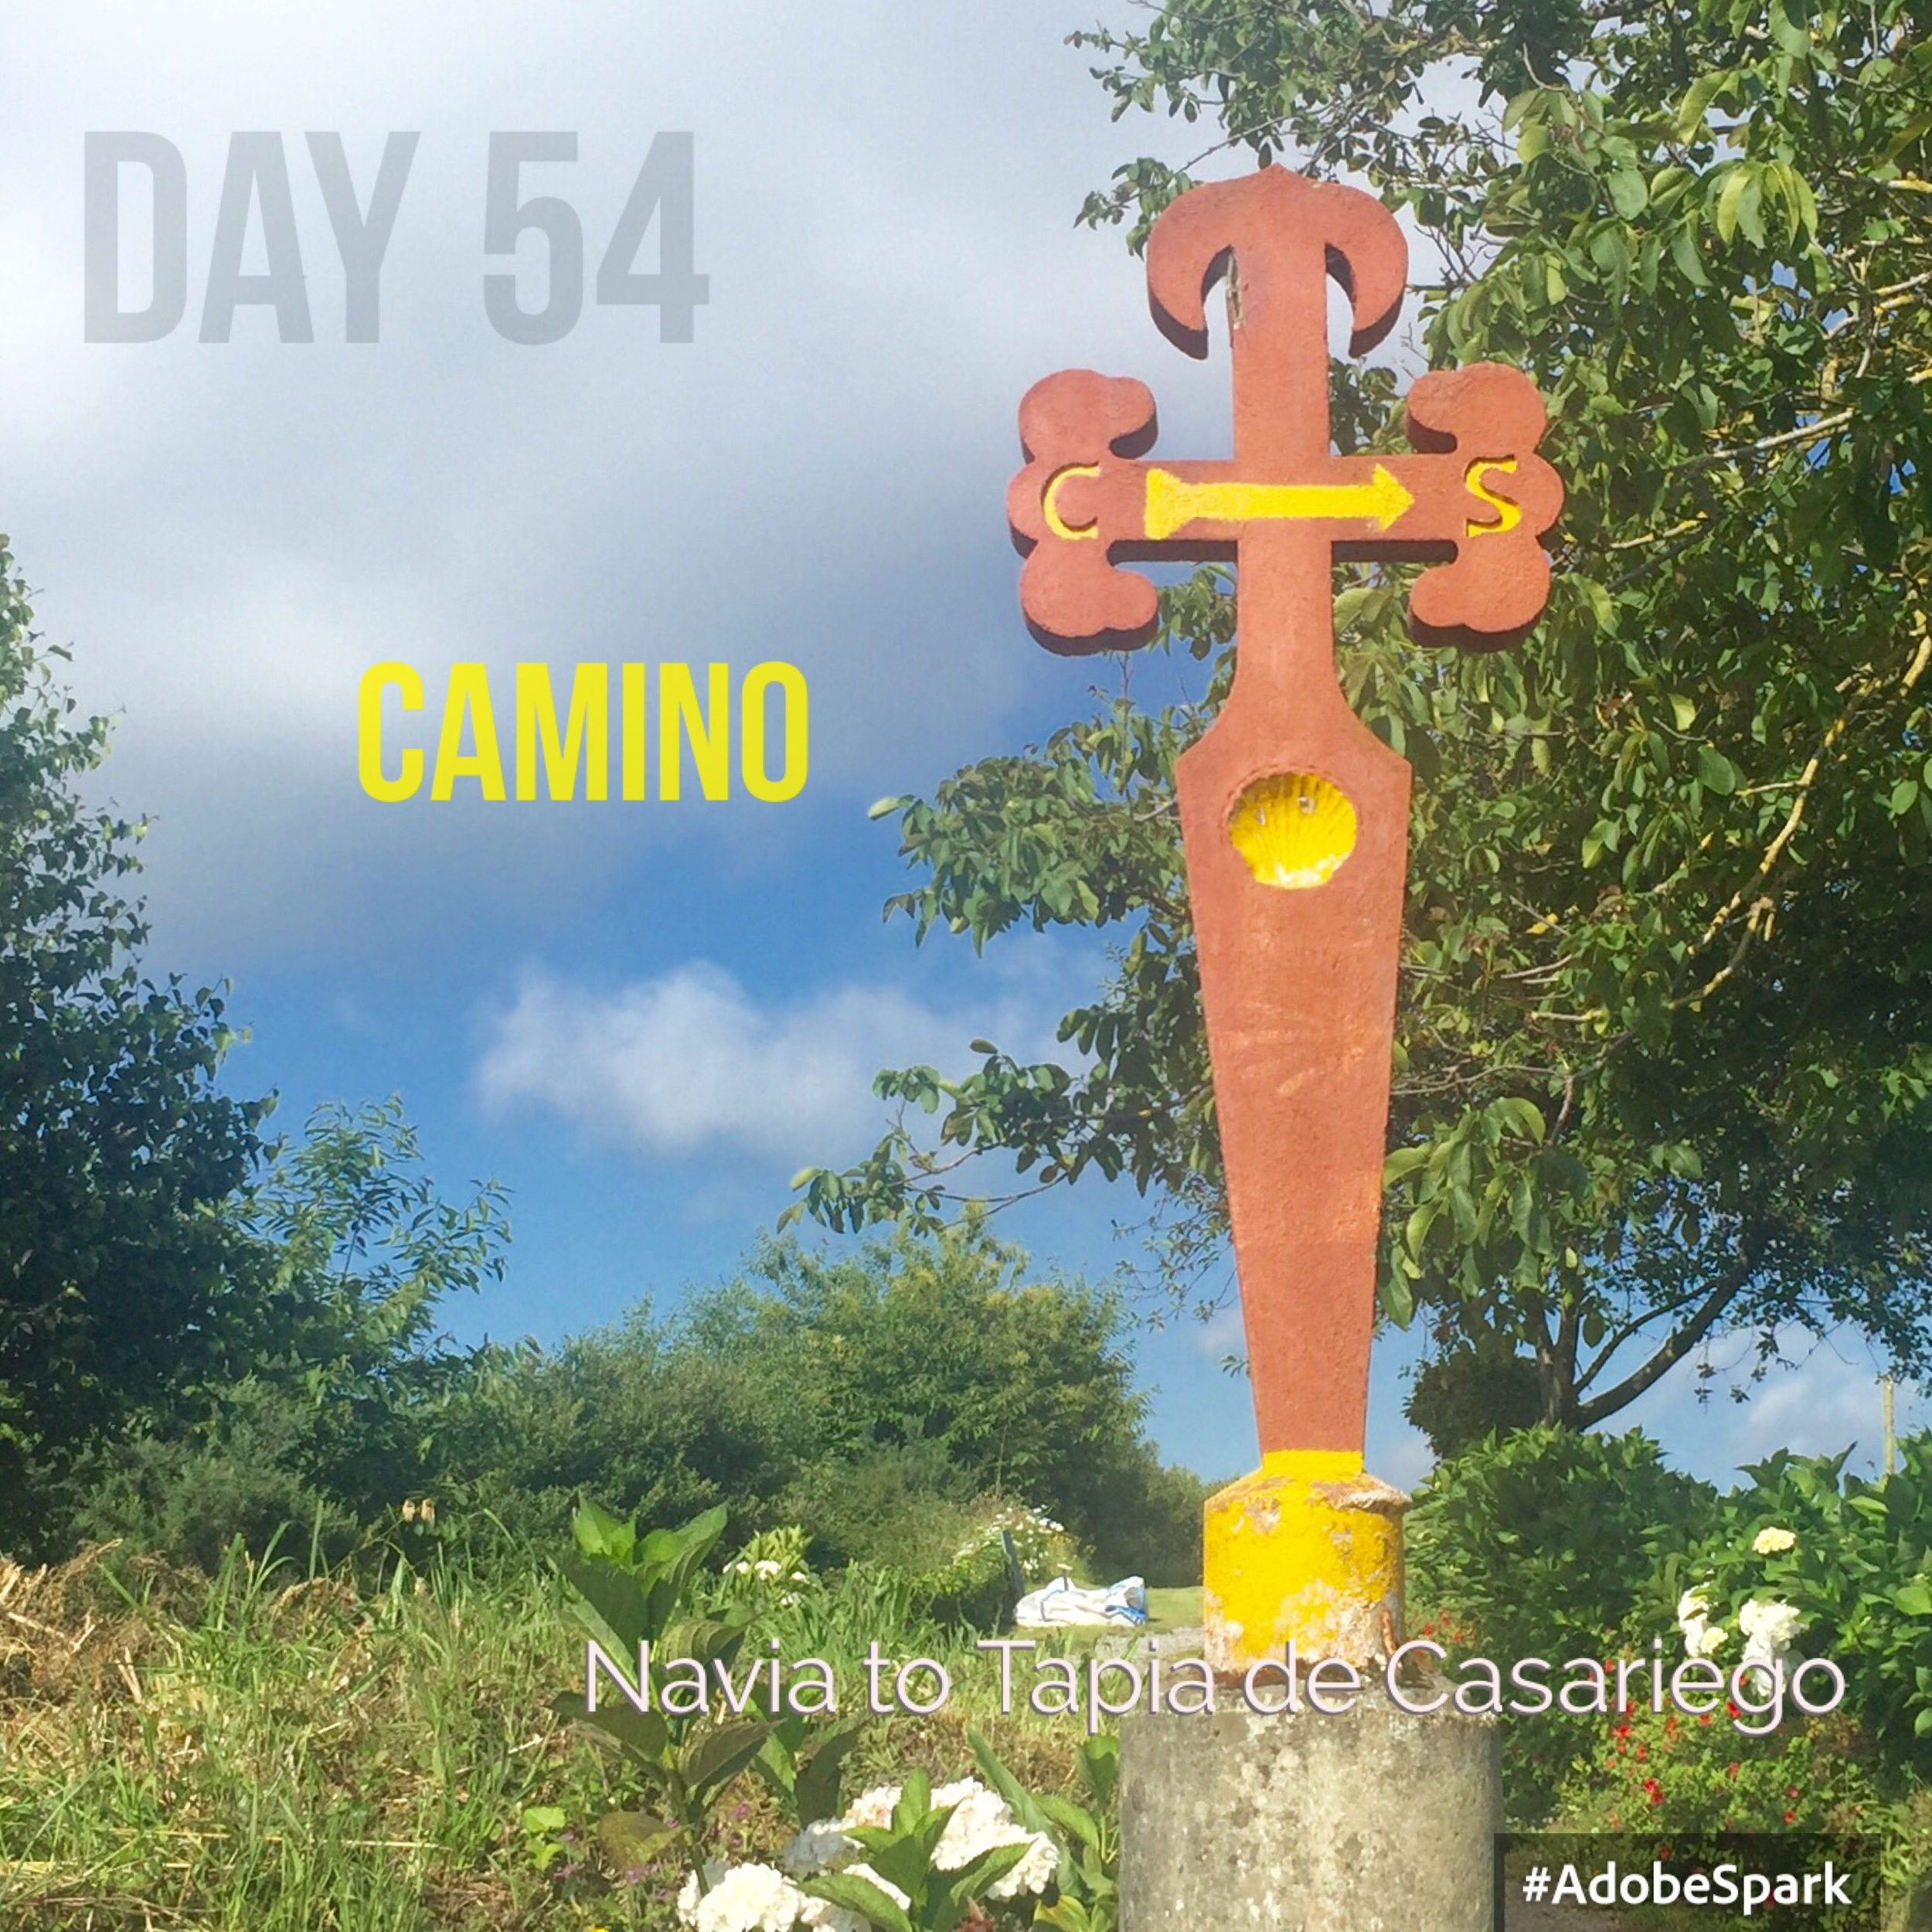 A new Camino sign to follow